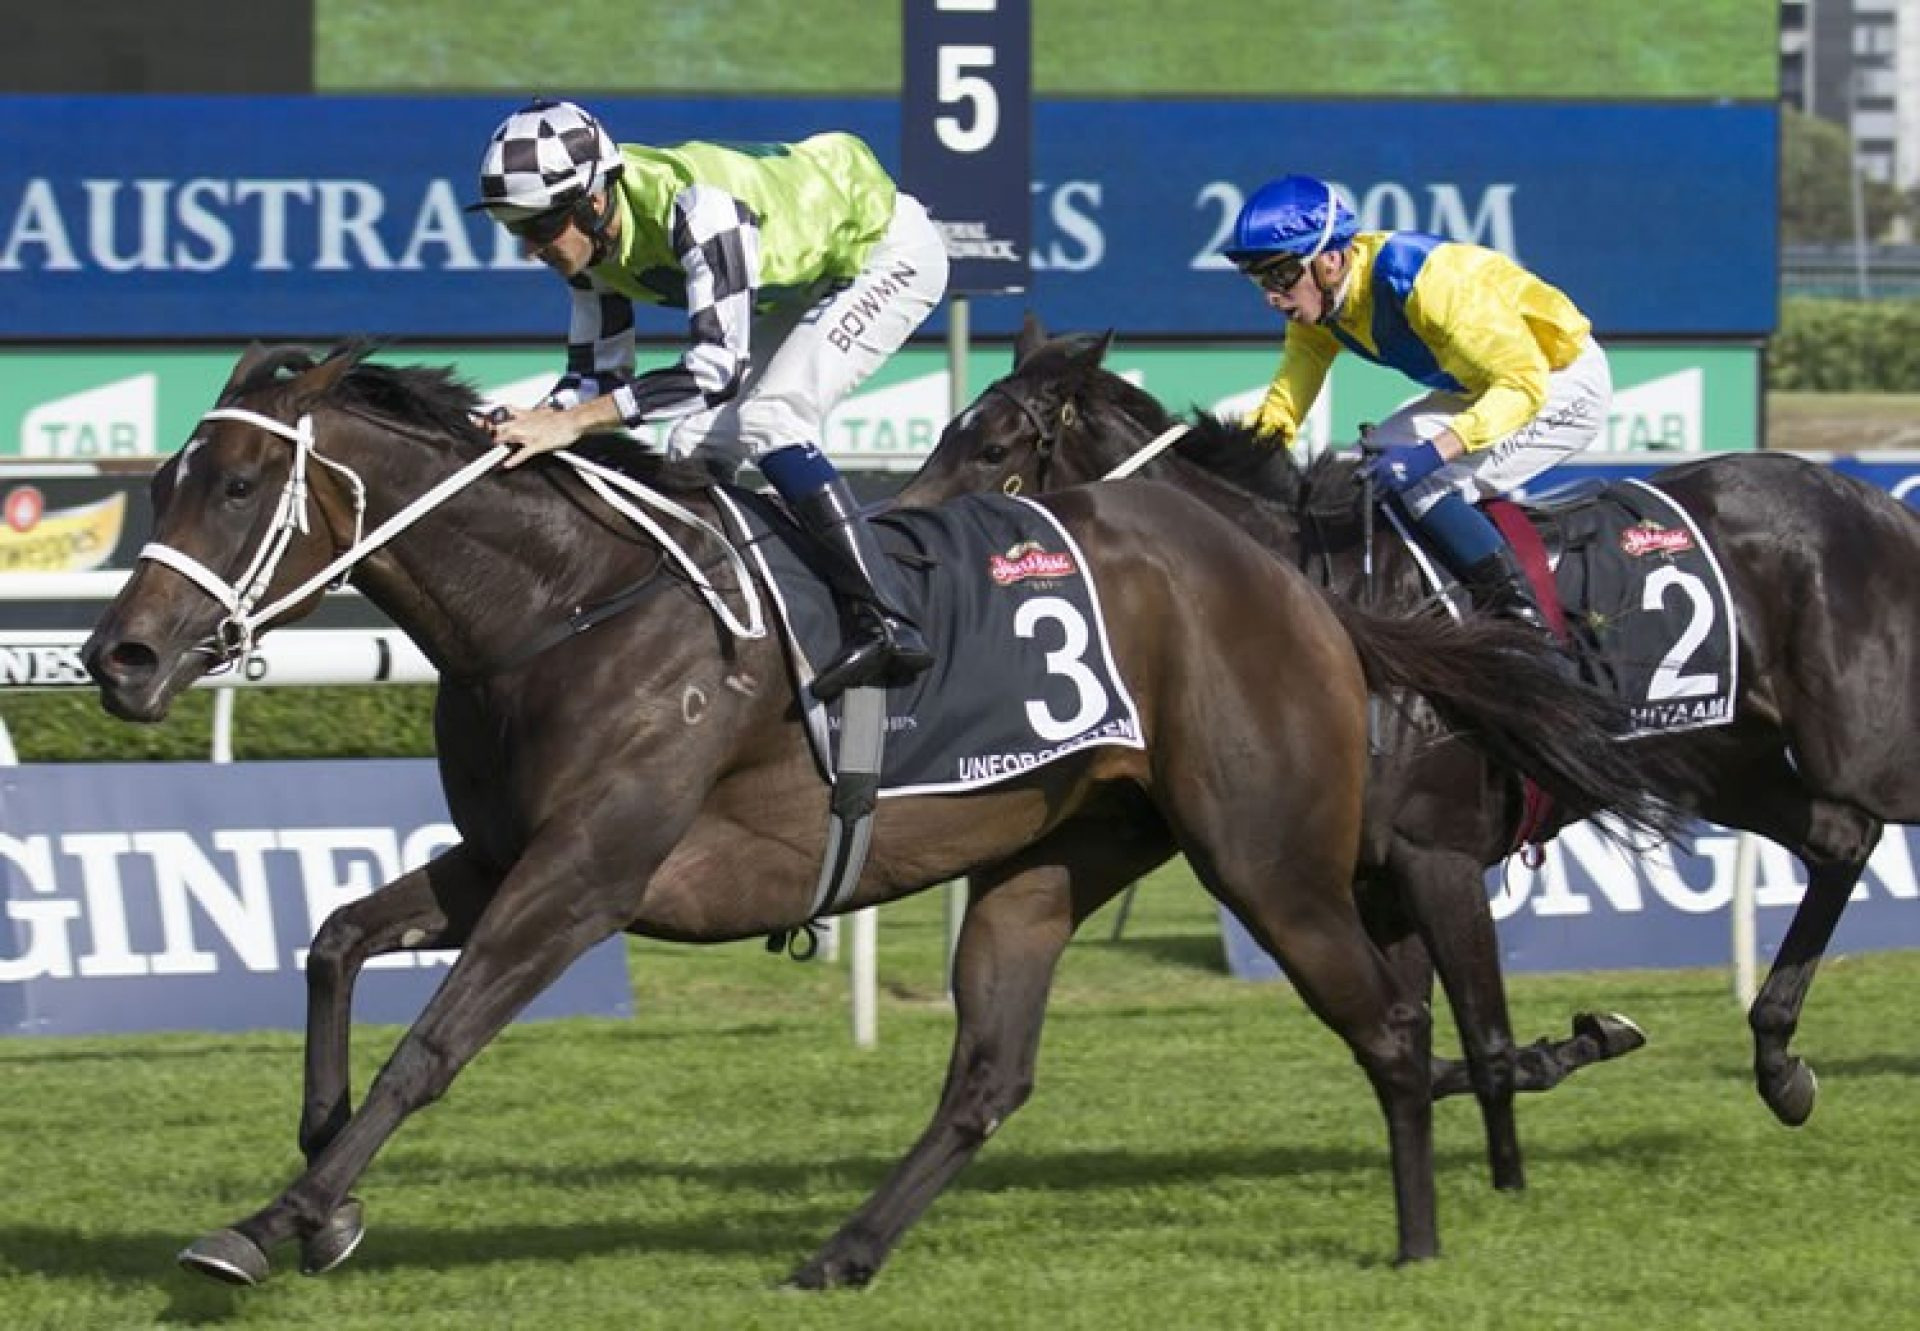 Unforgotten (Fastnet Rock) winning the G1 Australian Oak at Randwick